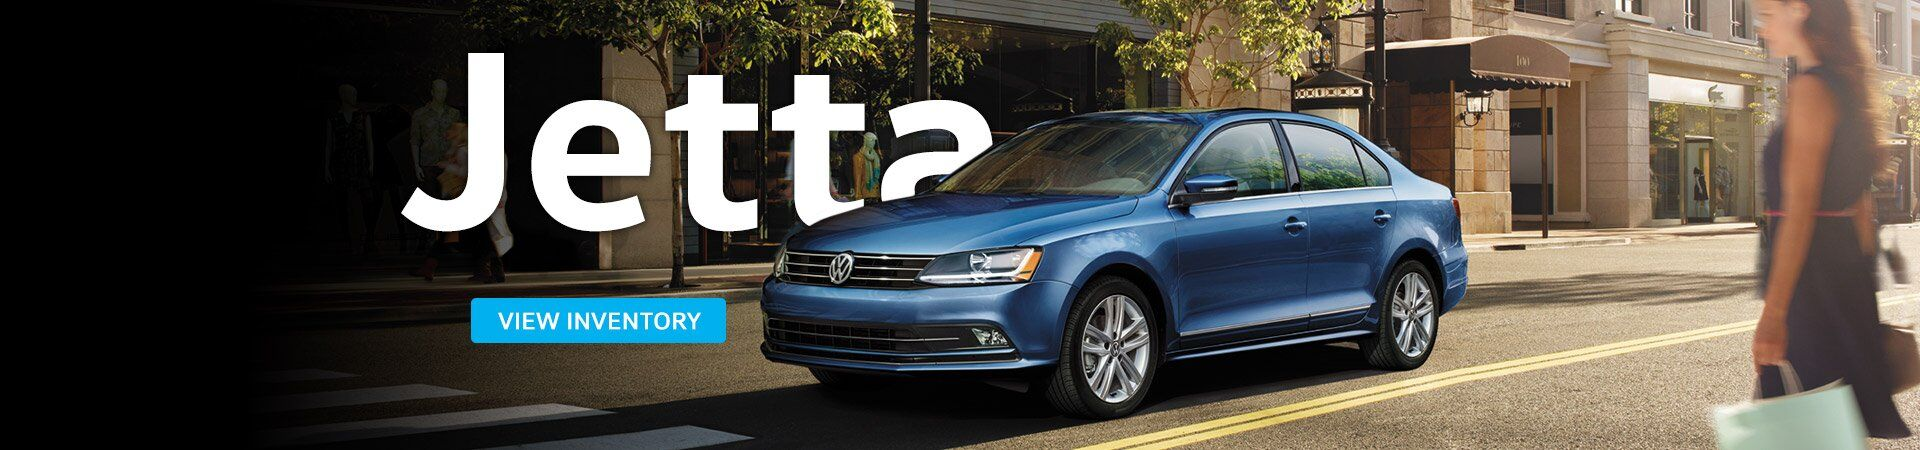 New VW Jetta near San Diego